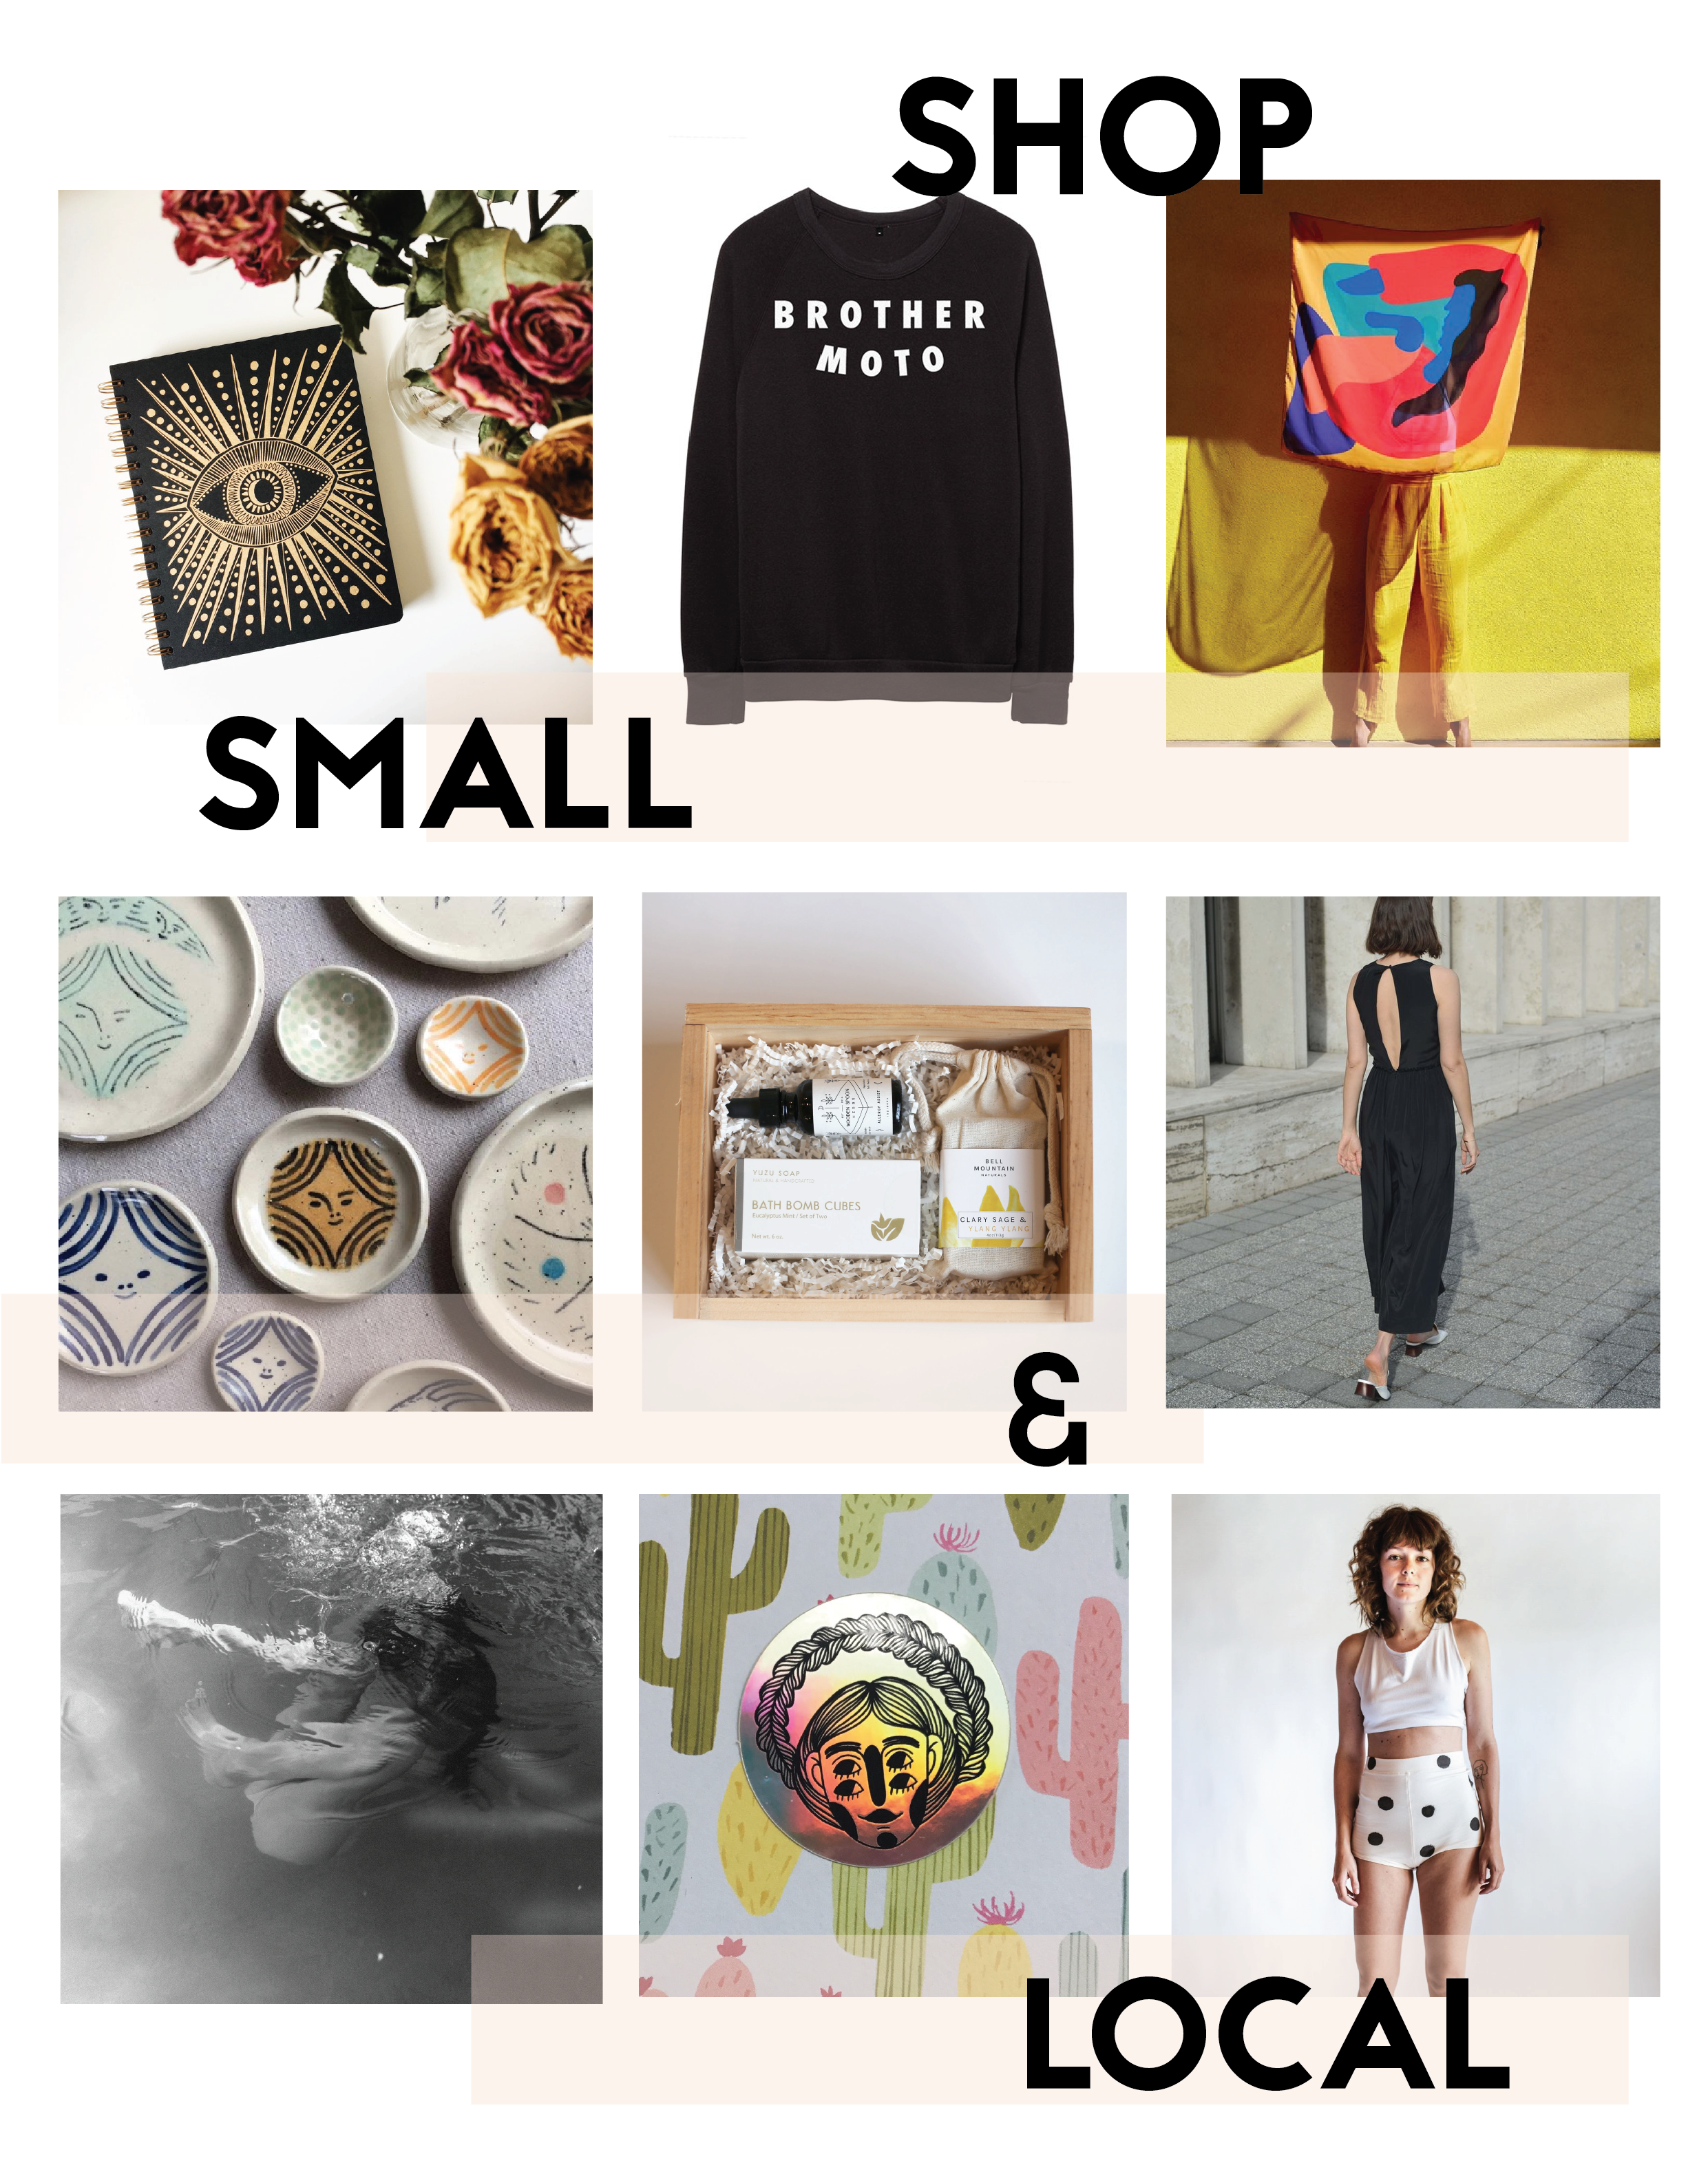 Images above not owned by Sad Girl Collective. Please visit tagged links and #shopsmall.